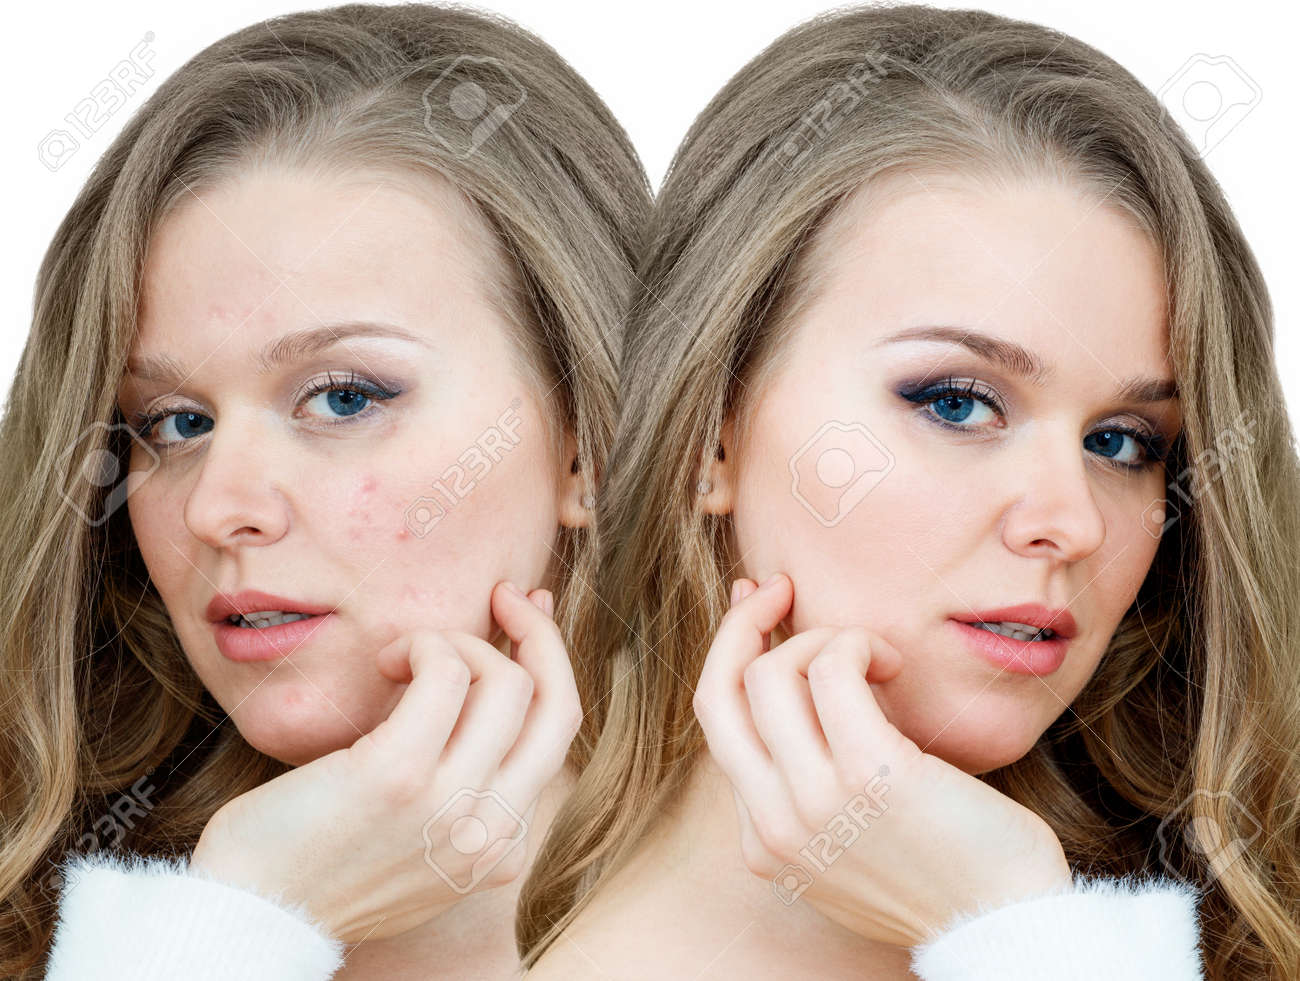 Woman With Acne Before And After Treatment And Makeup Stock Photo Picture And Royalty Free Image Image 139371383